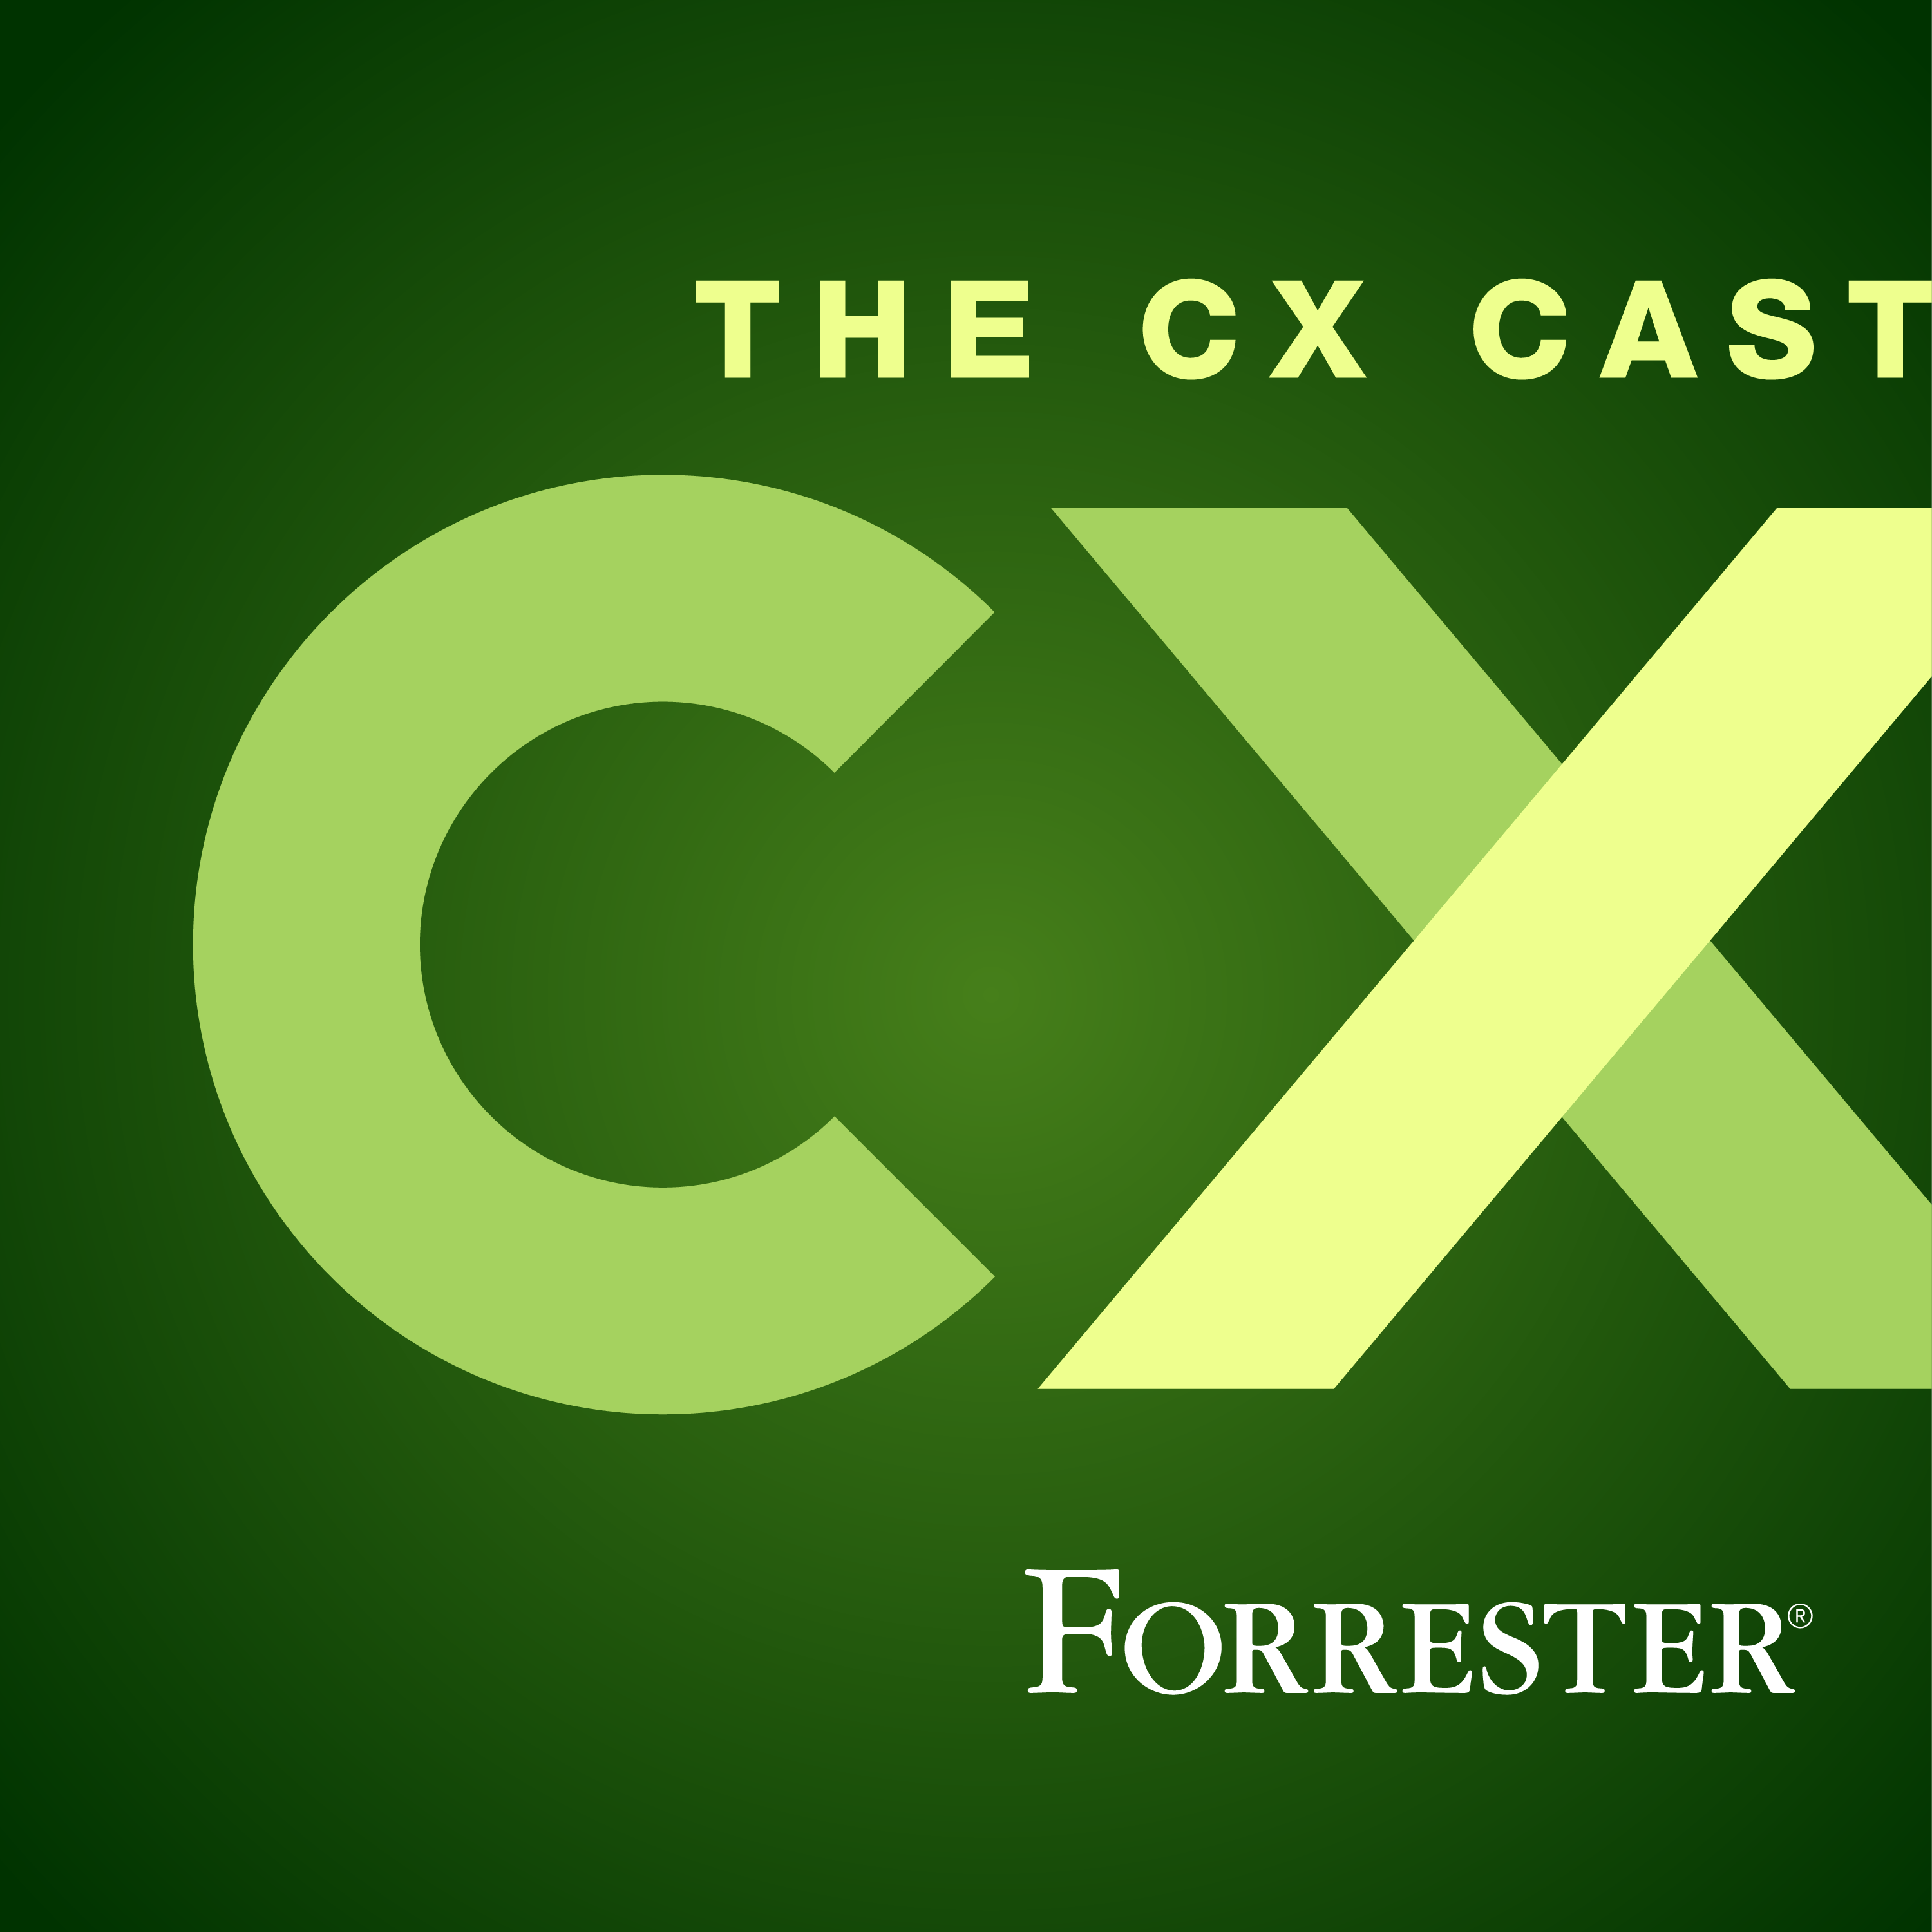 The CX Cast ® by Forrester